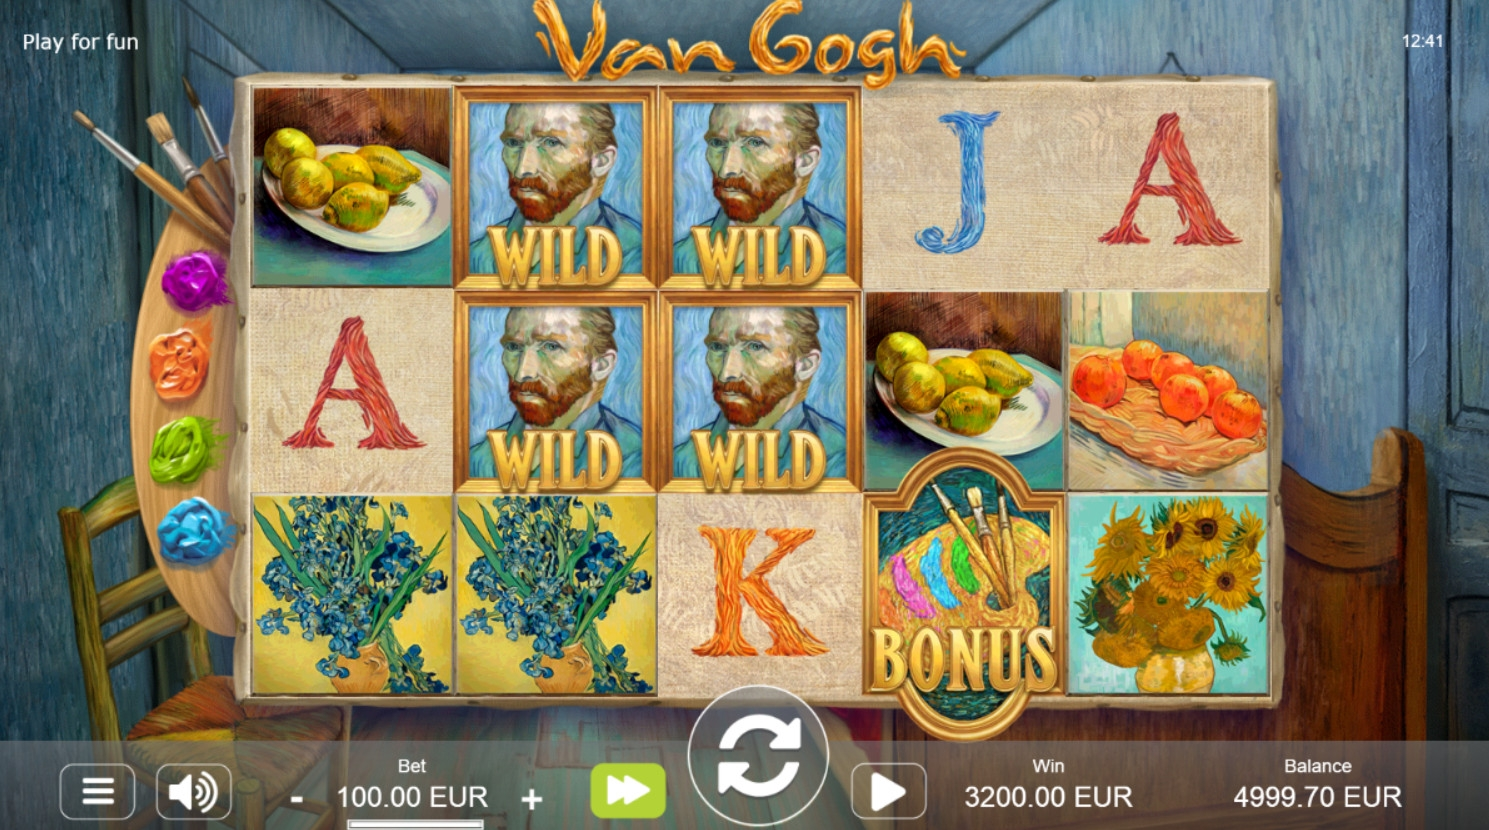 Van Gogh (Van Gogh) from category Slots